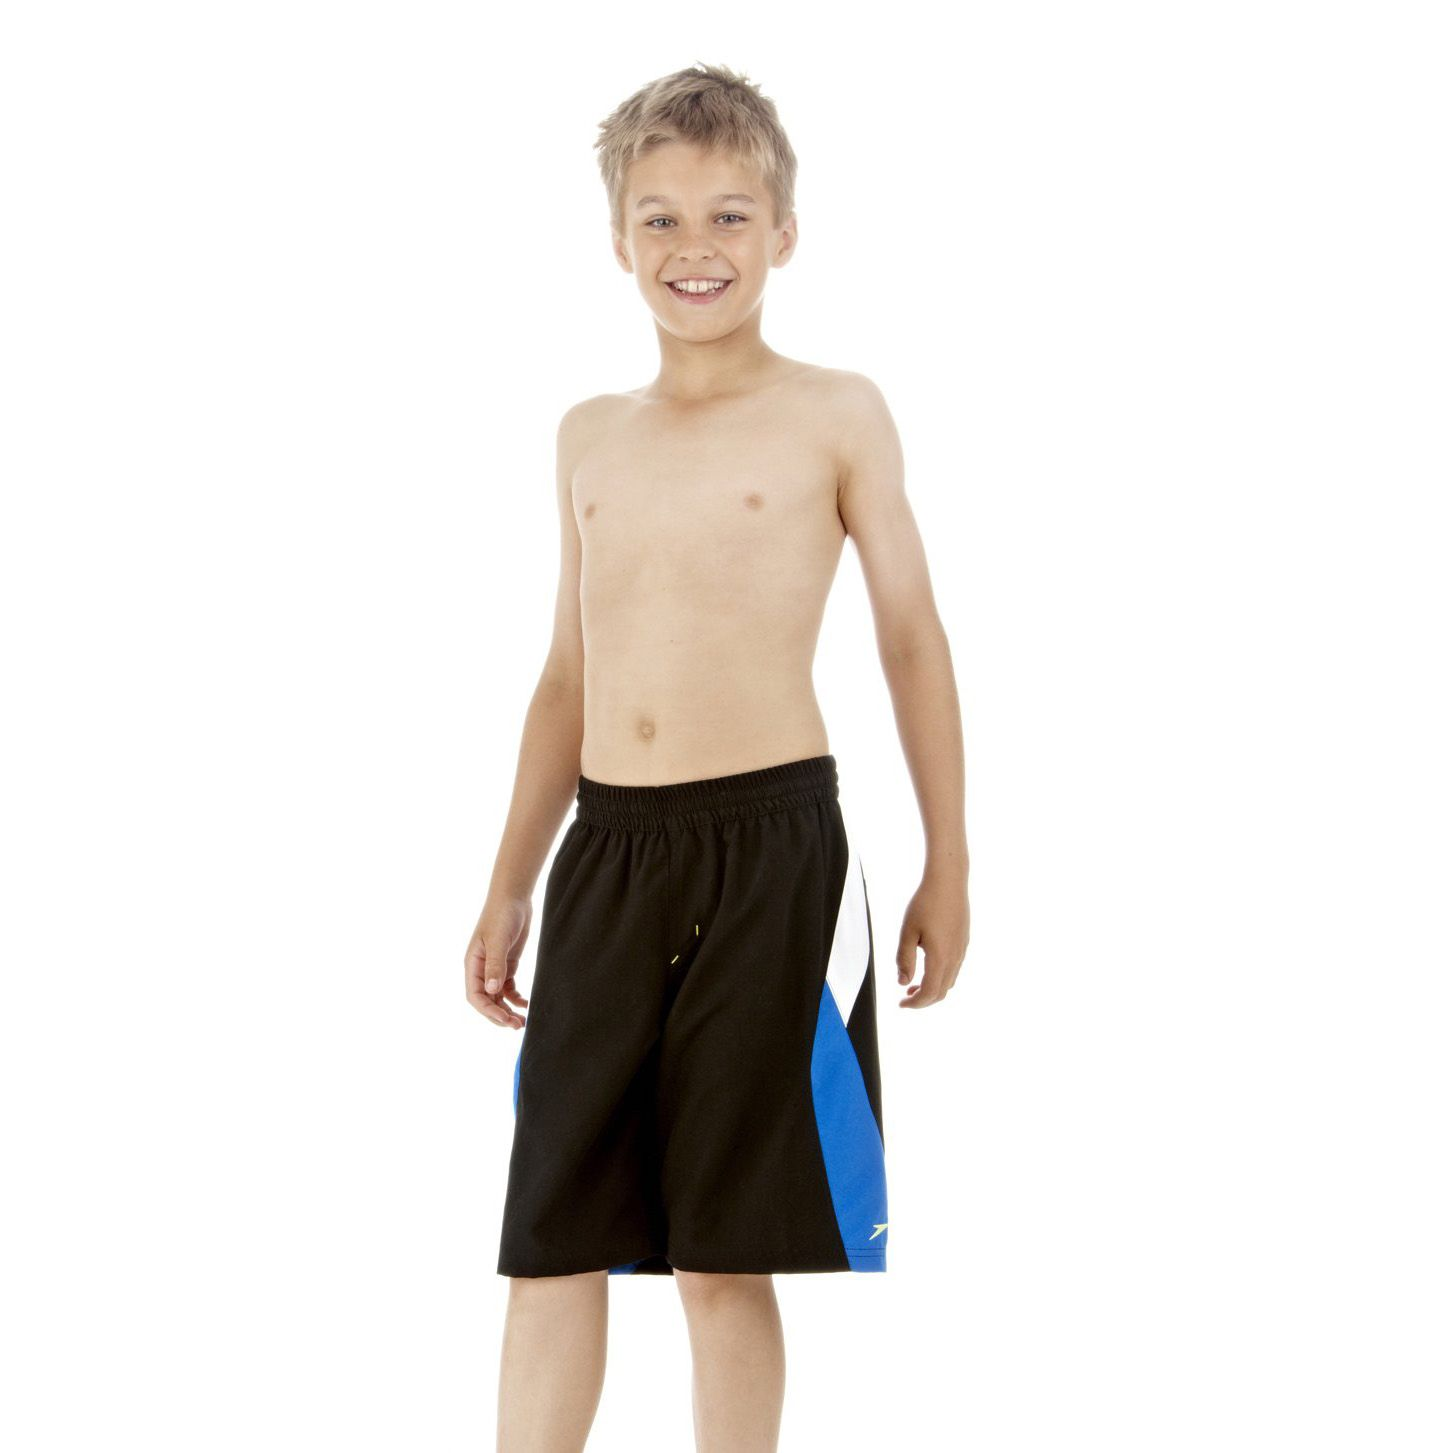 http://cdn.sweatband.com/speedo%20barz%2018%20boys%20watershort_speedo_barz_18_boys_watershort_side_2000x2000.jpg